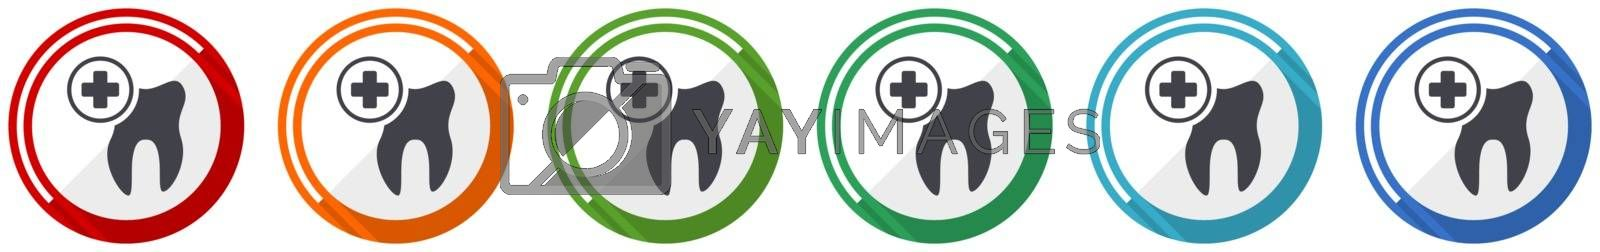 Dentist icon set, dental, tooth flat design vector illustration in 6 colors options for webdesign and mobile applications